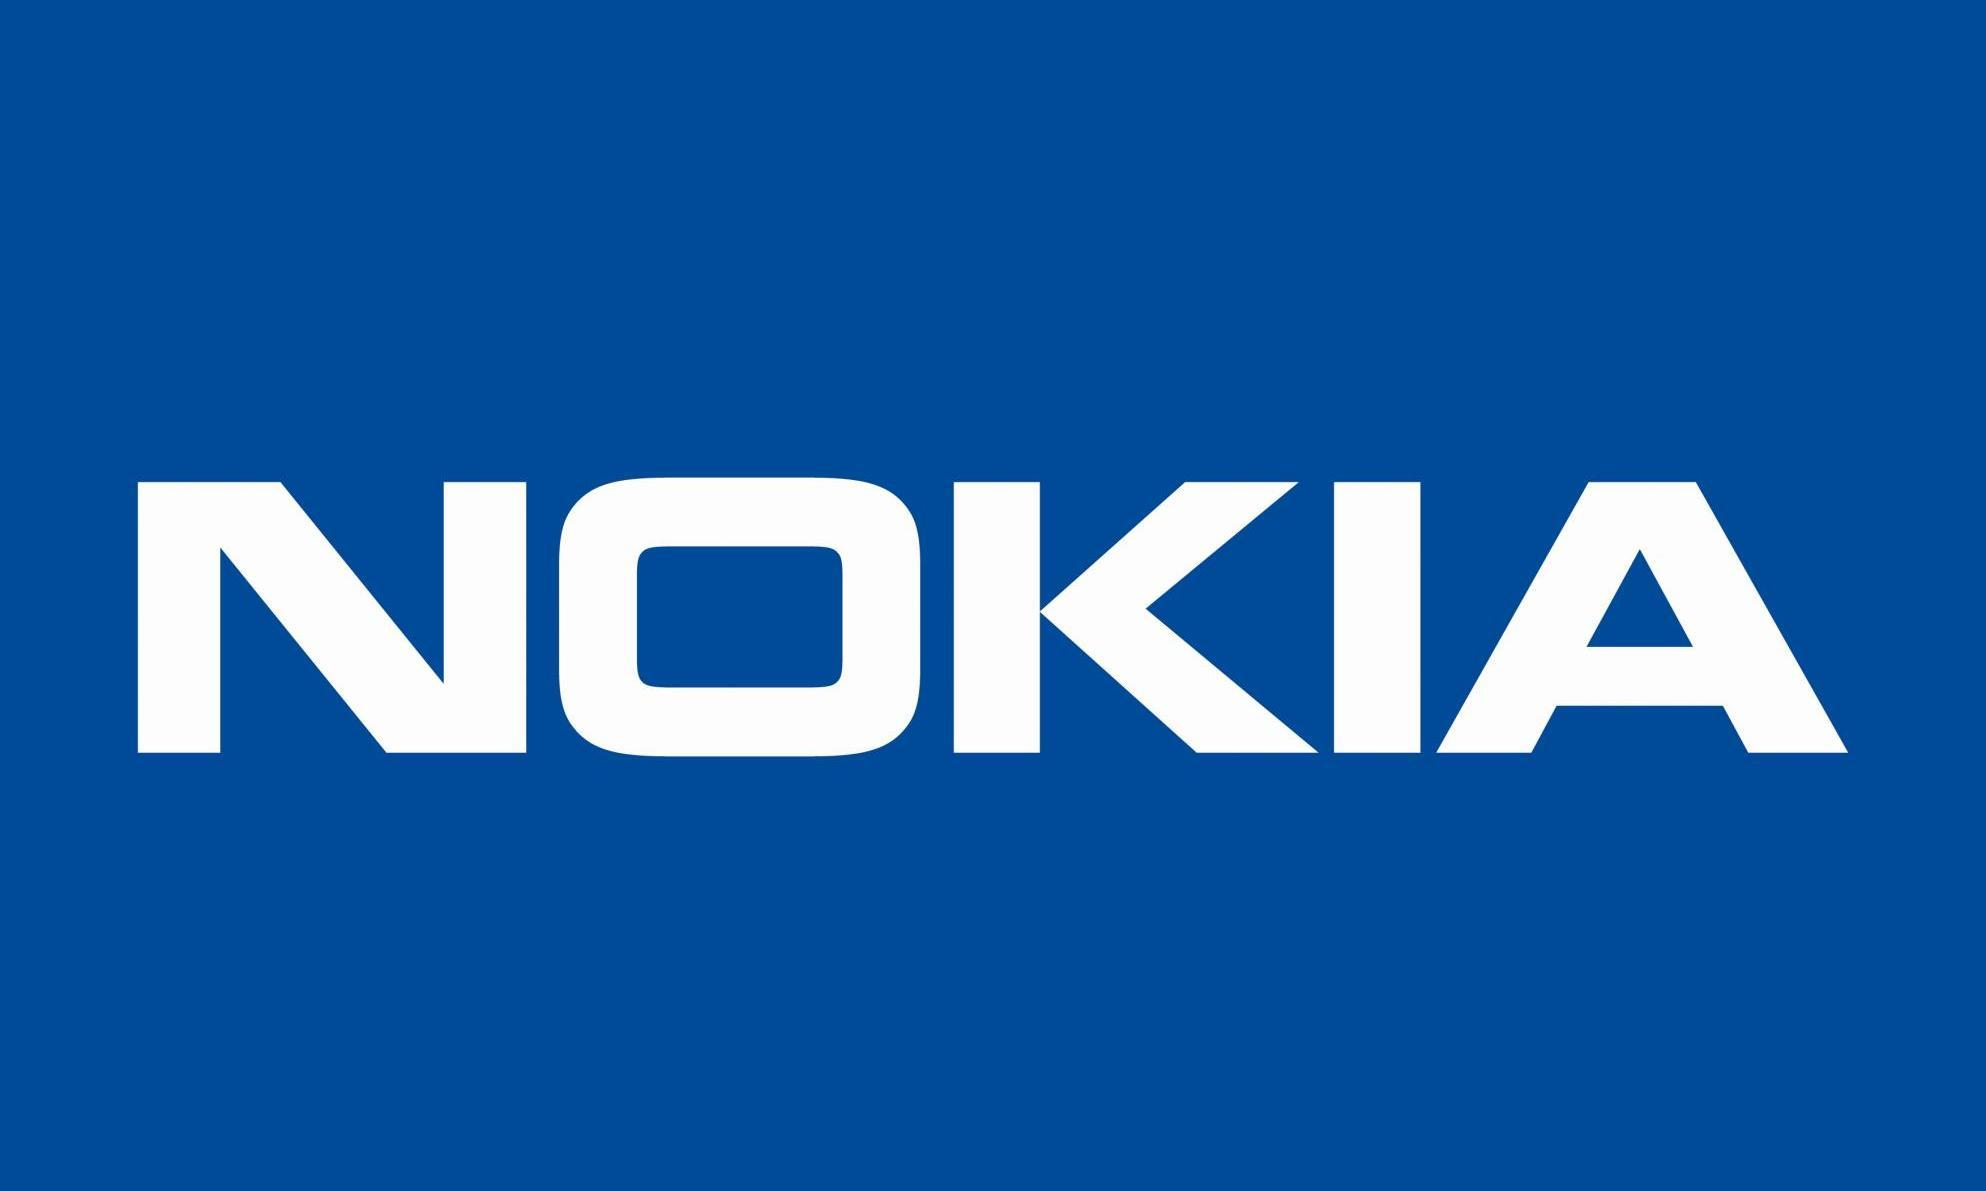 Almost every recent Nokia smartphone will get Android 10